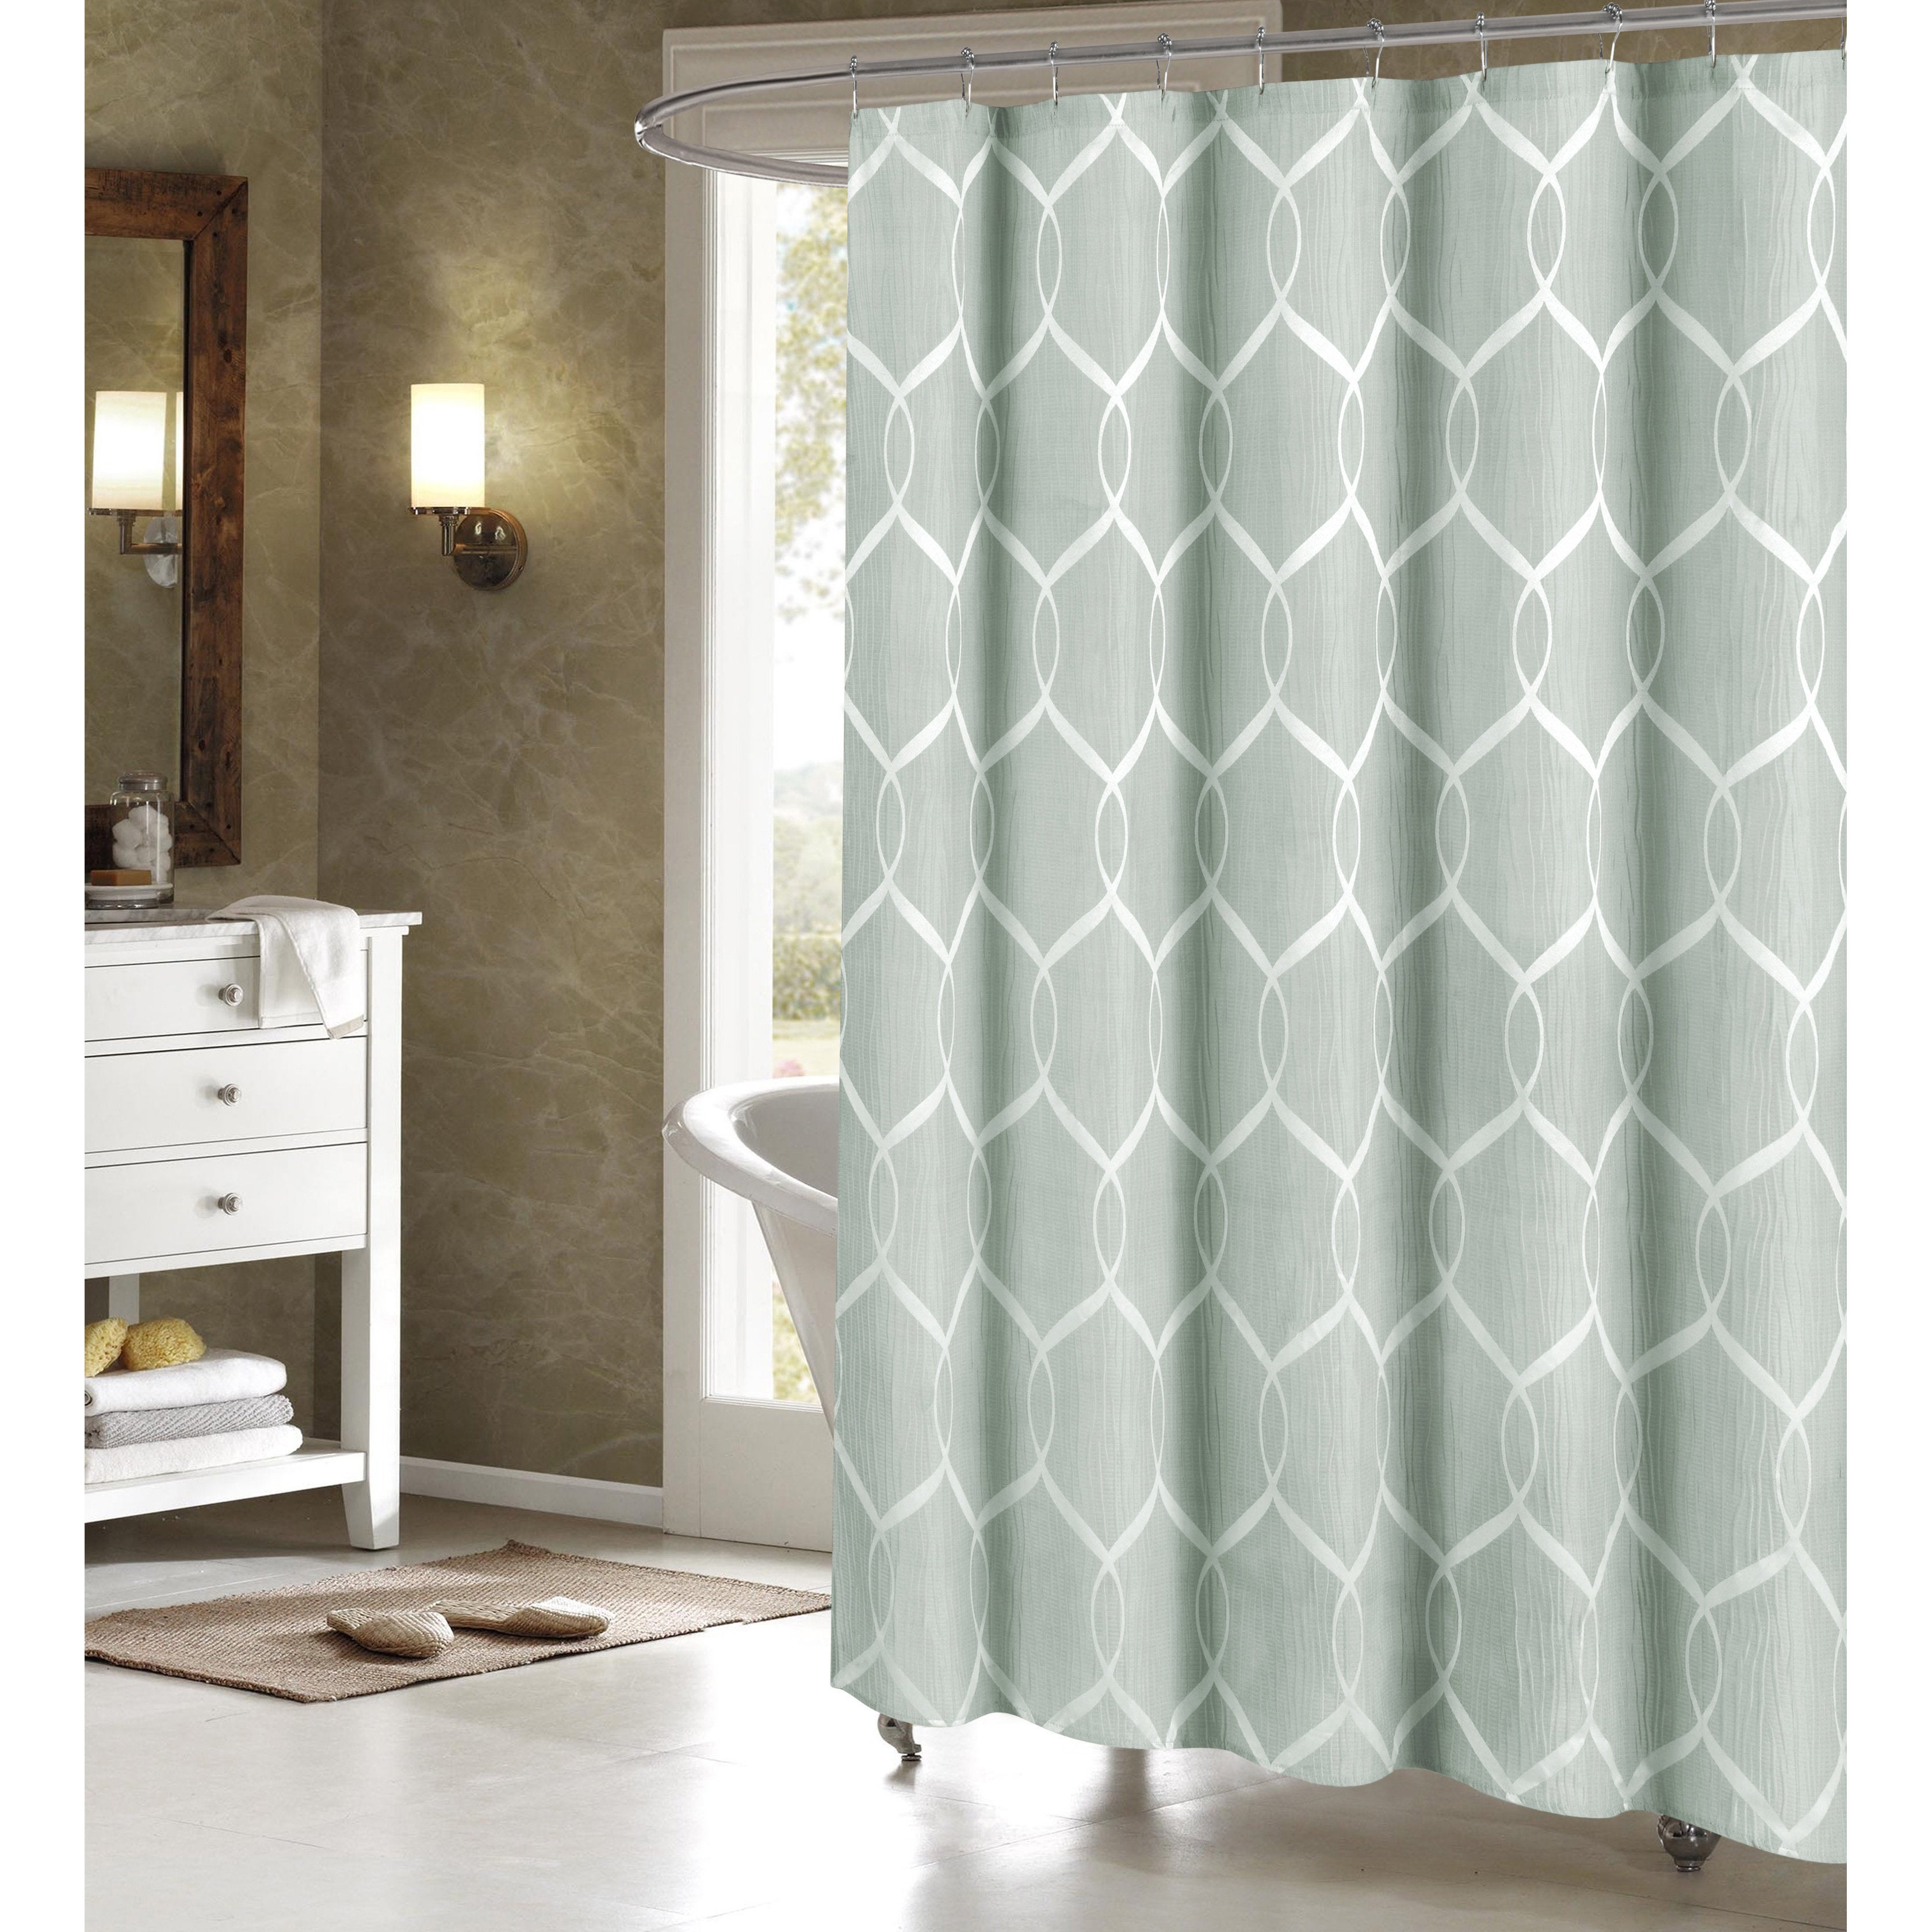 Shop Quey Wrinkle Wave Fabric Shower Curtain